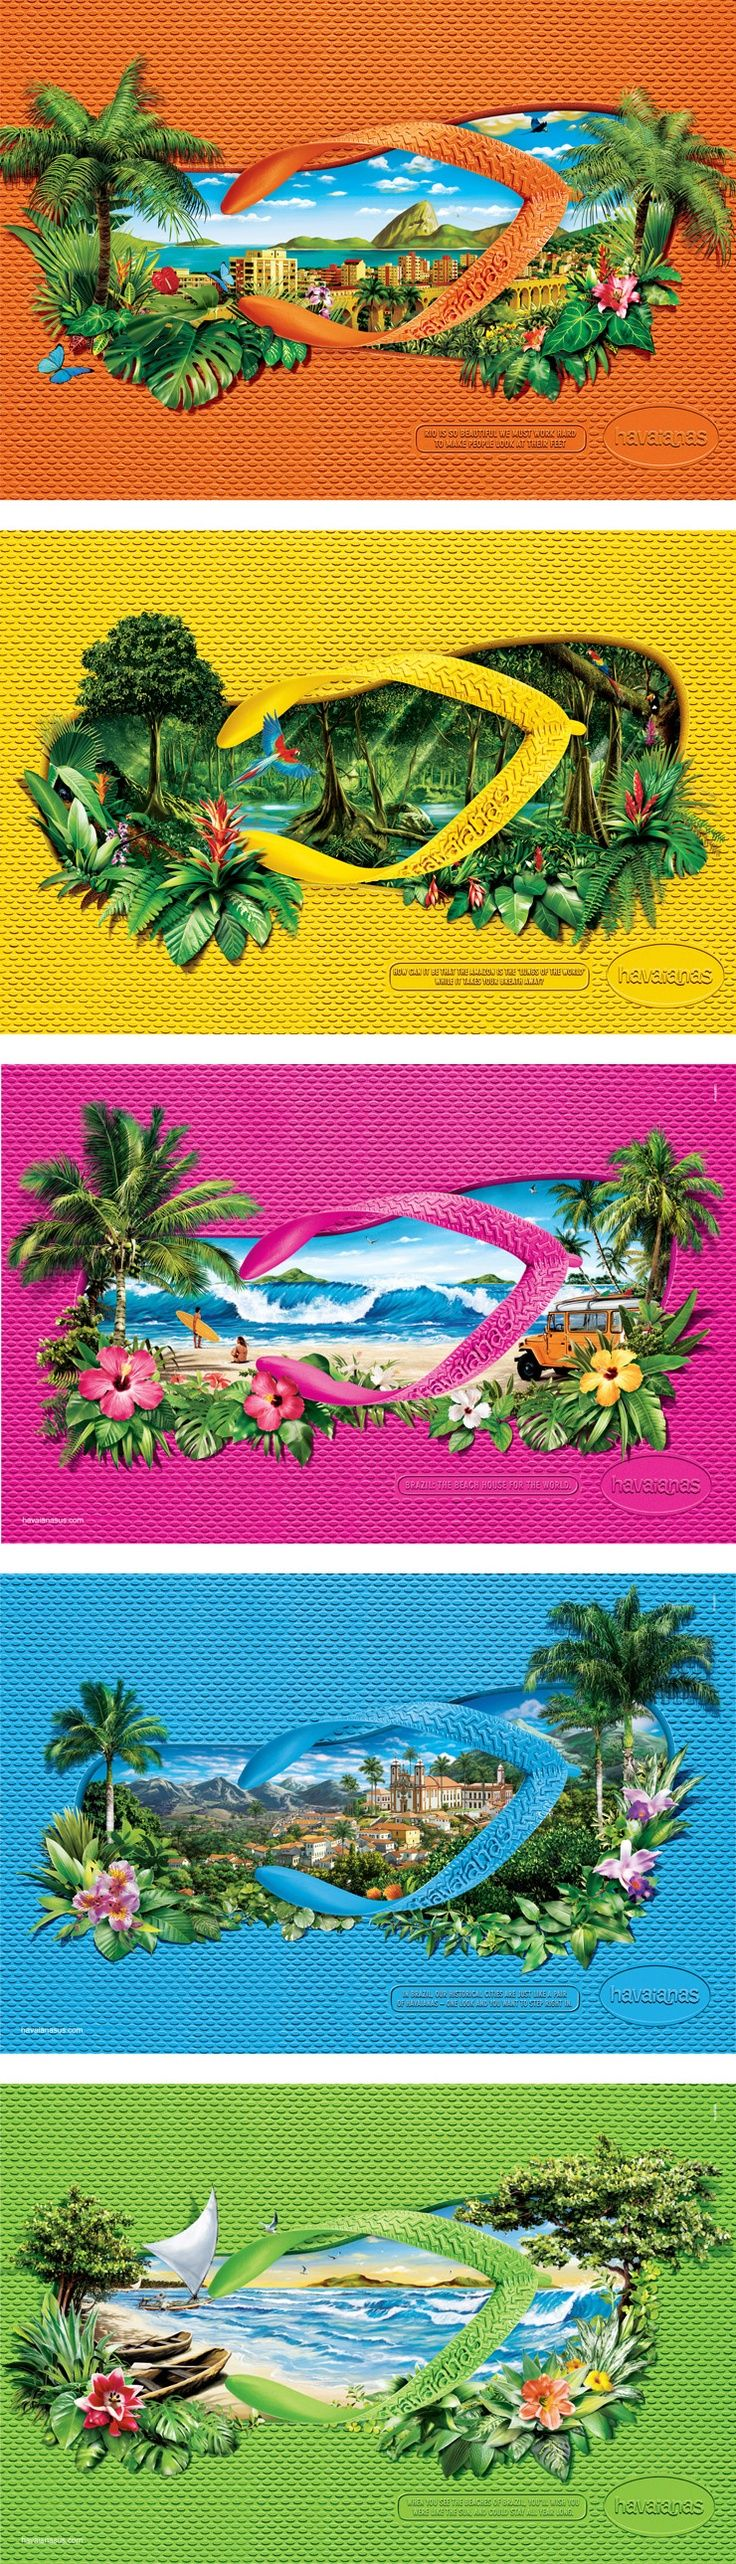 No matter where you go, there will always be a perfect pair of Havaianas for…